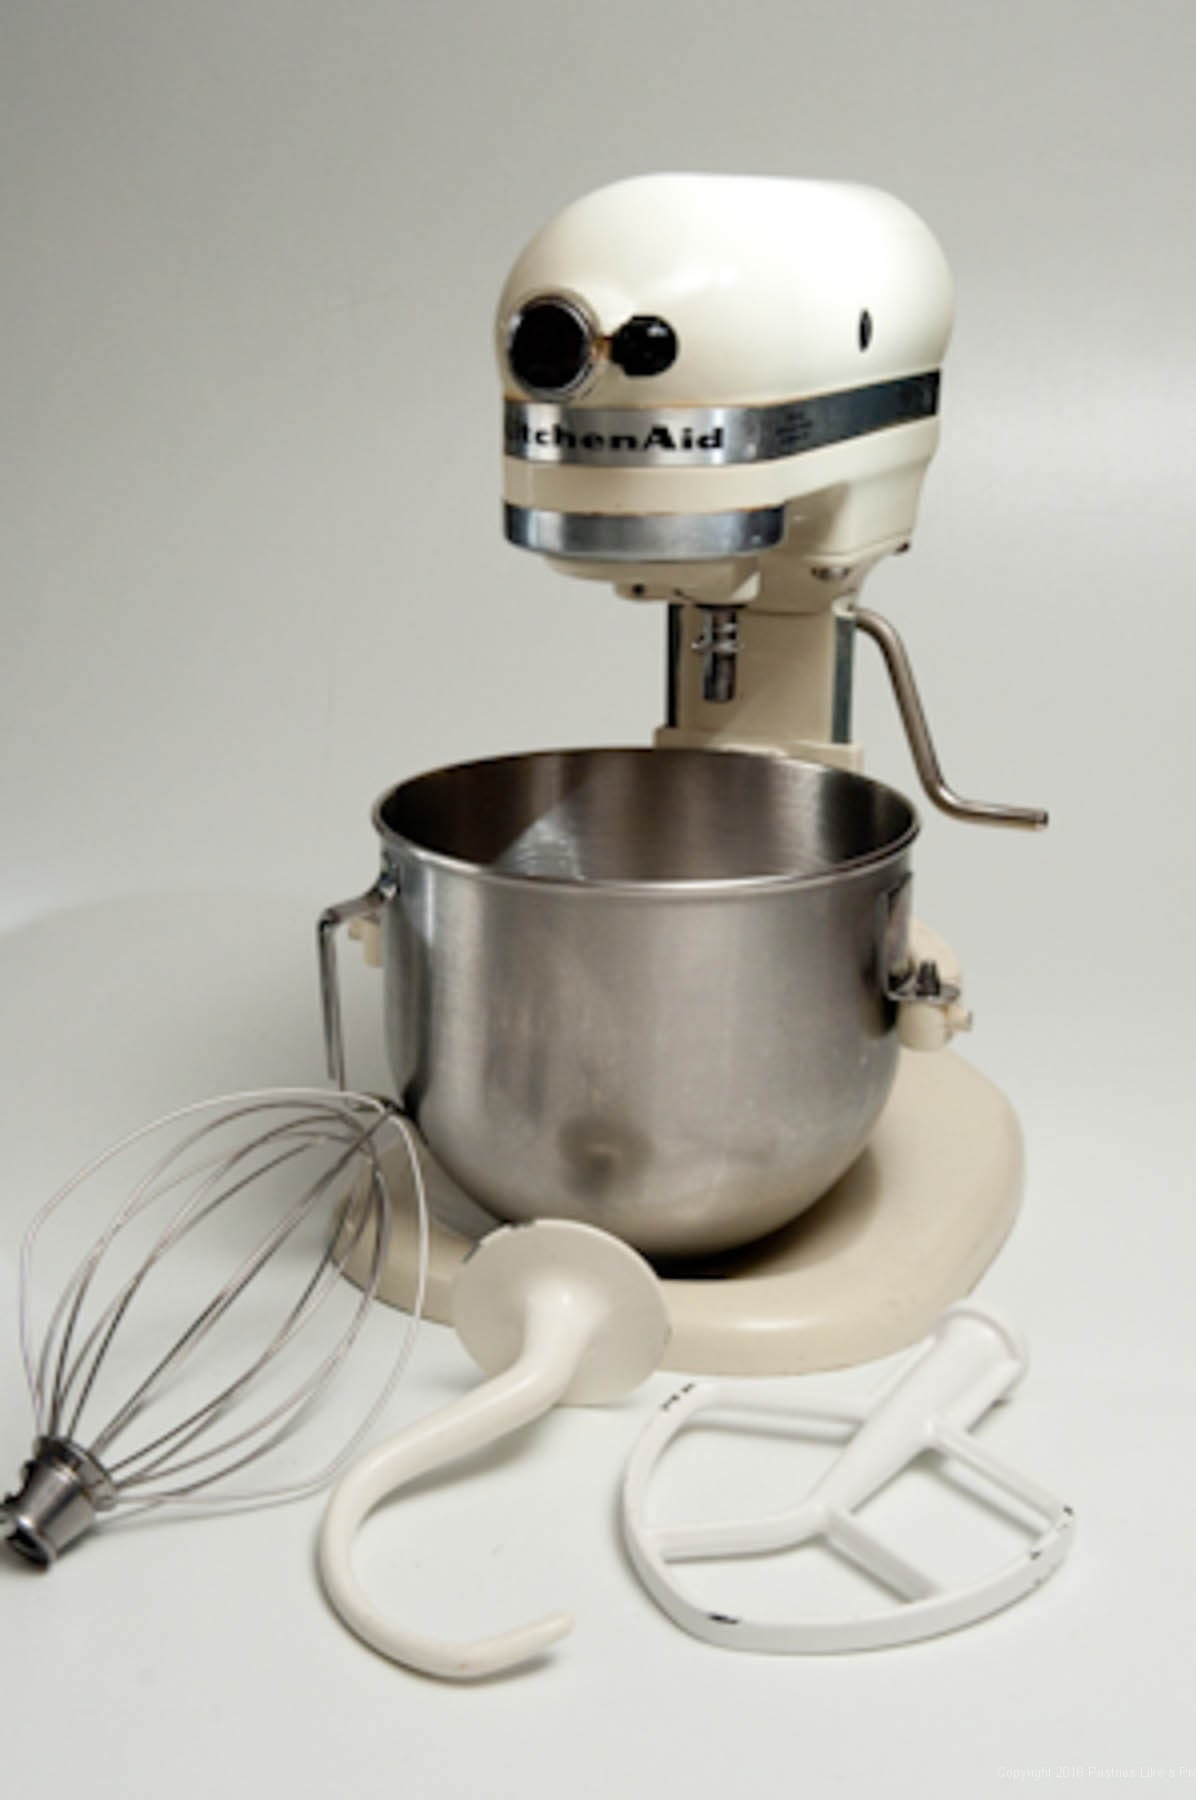 Kitchen Aid Mixer Are They Made In America